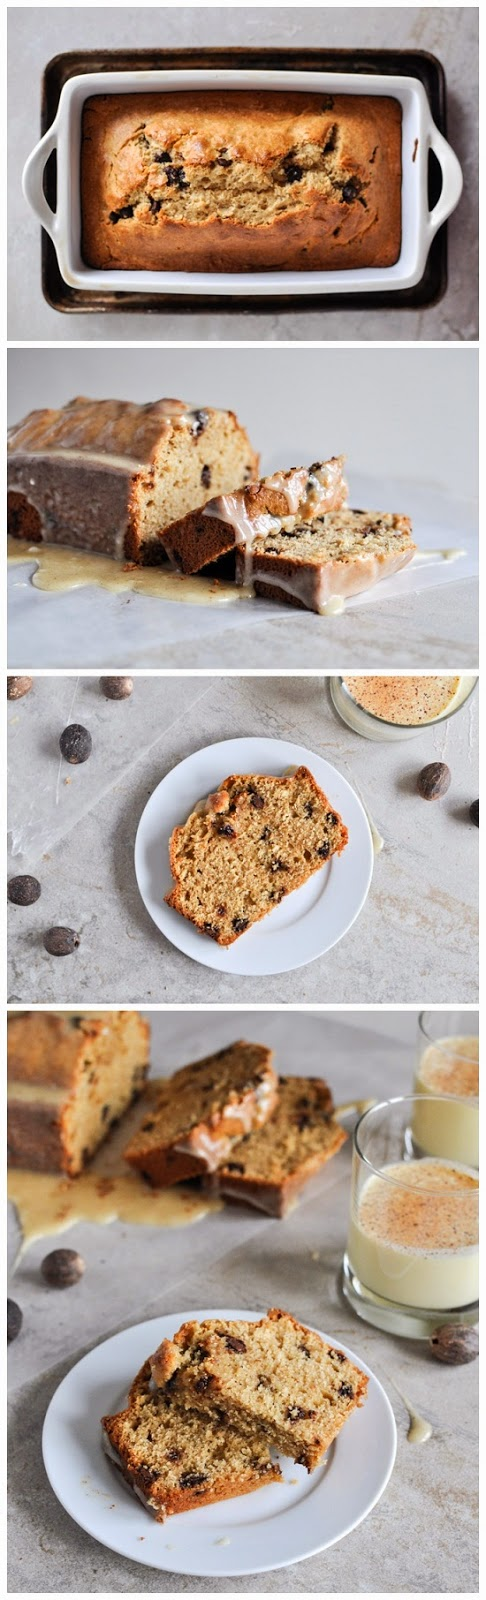 Eggnog Chocolate Chip Bread